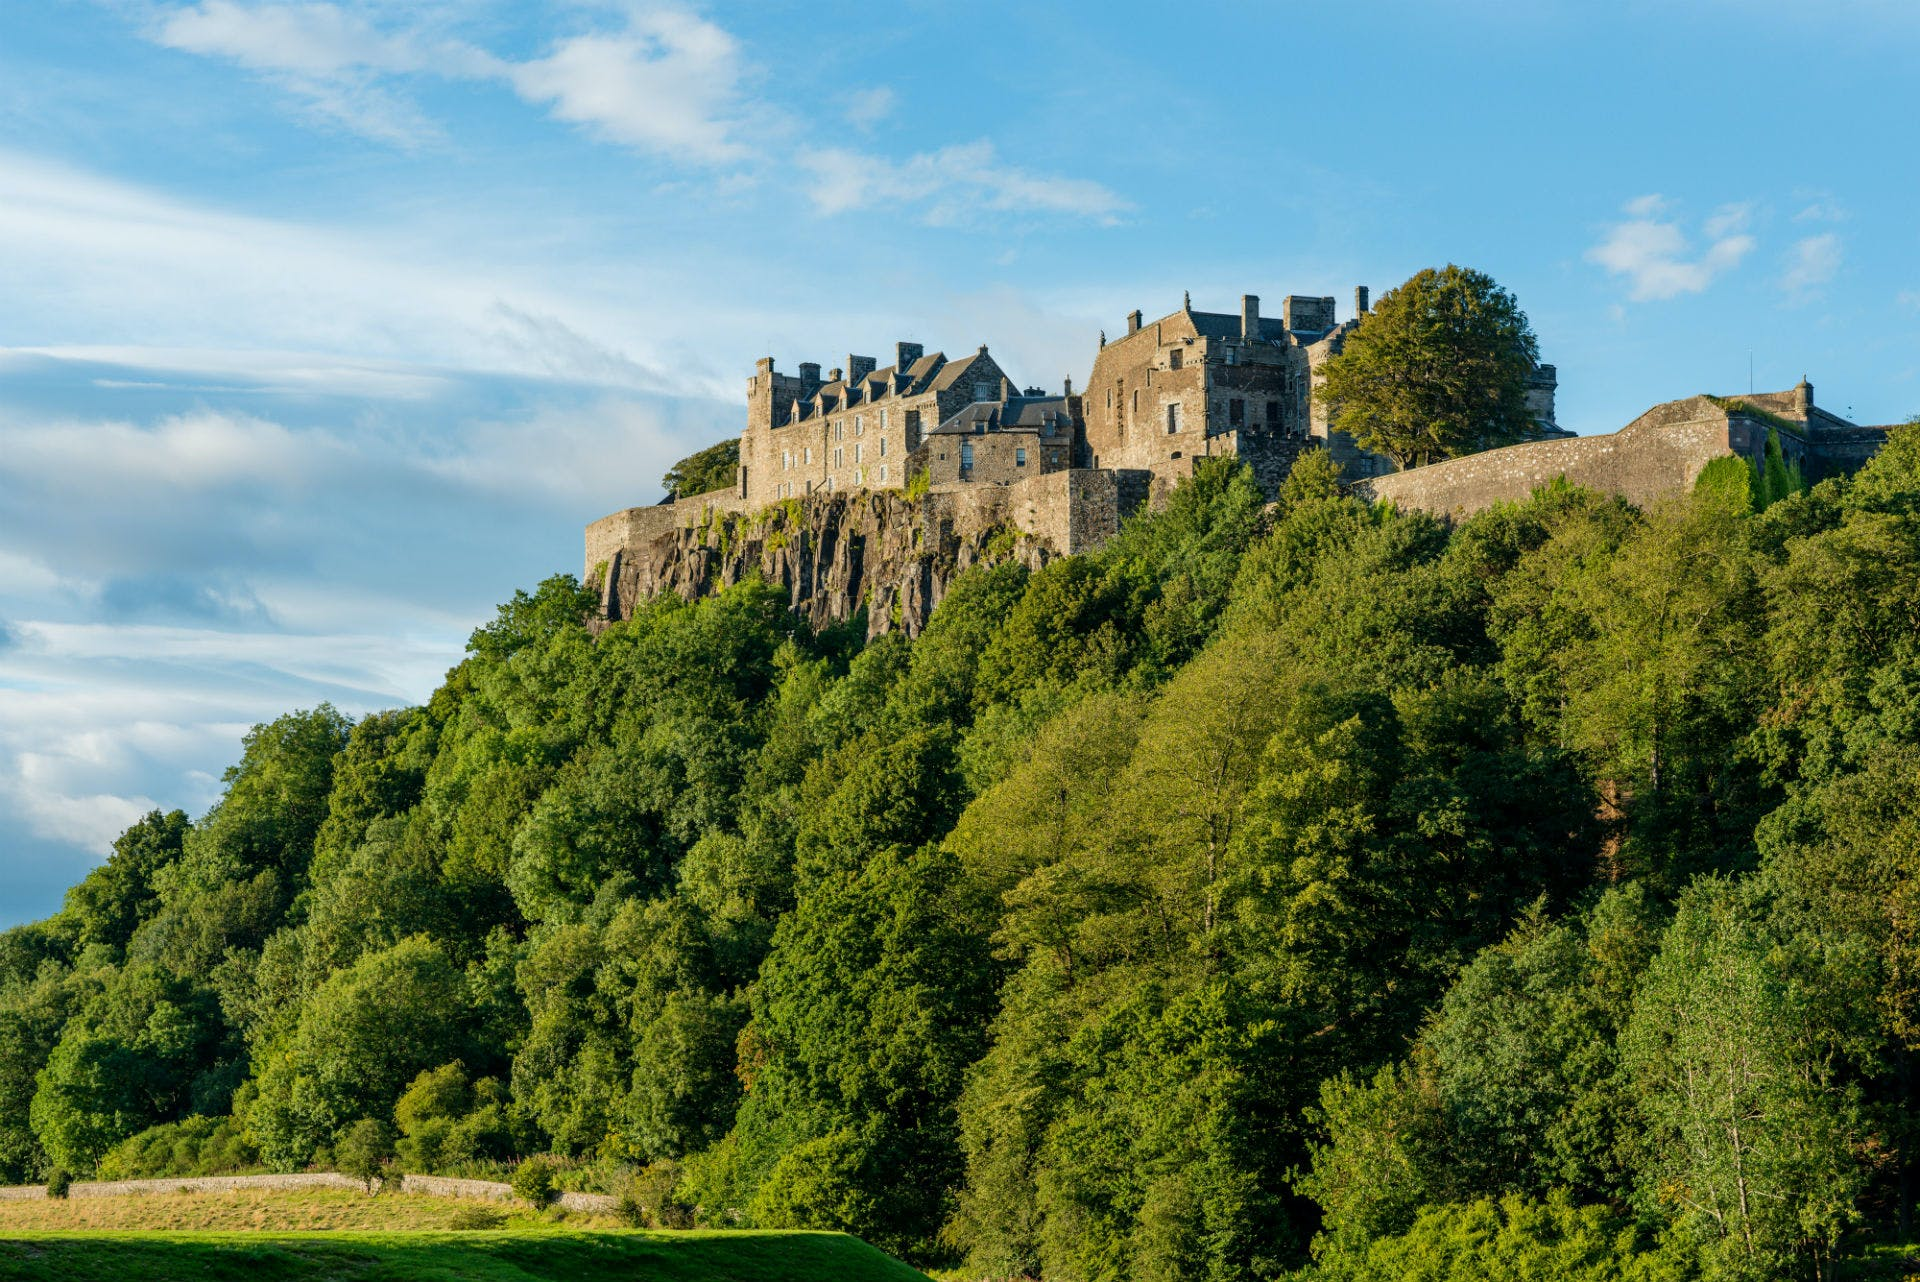 Tour of Stirling and Loch Lomond with whisky tasting